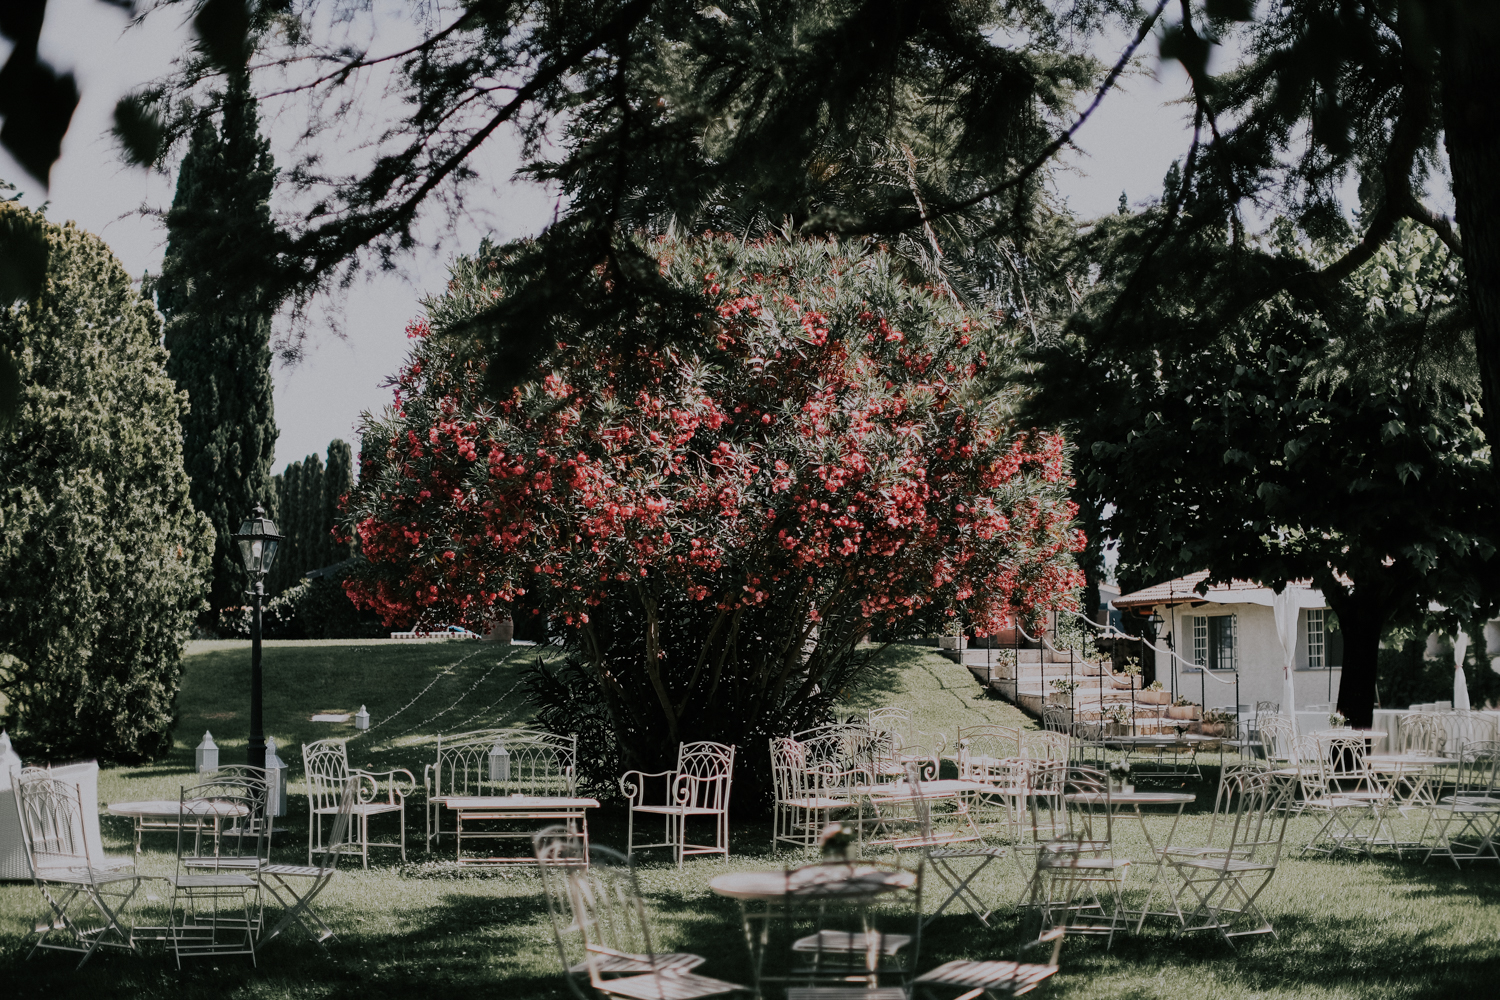 https://www.weddingamalfi.com/wp-content/uploads/Alessandro-and-Diego-white-chairs-for-guests-in-the-garden.jpg